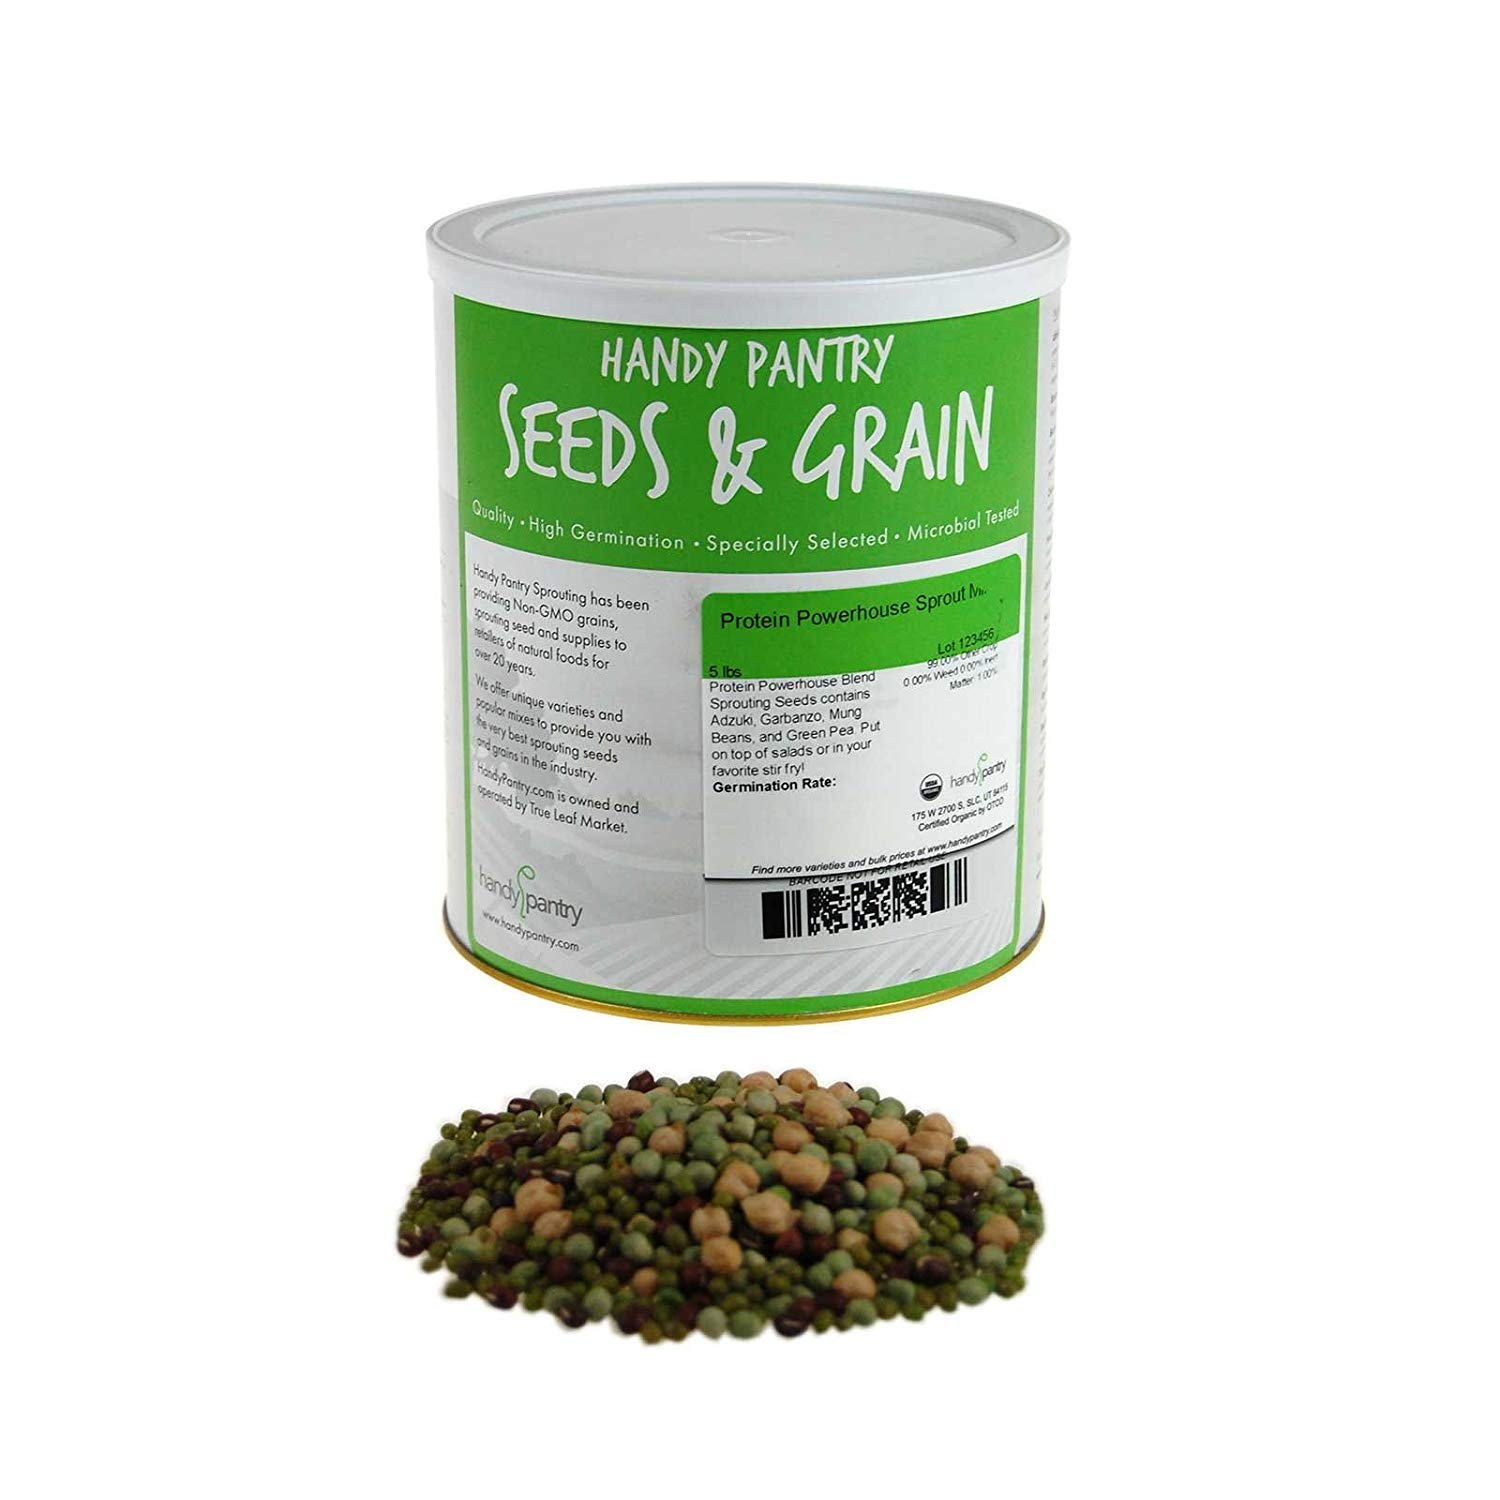 Handy Pantry Protein Powerhouse Sprouting Seed Mix: 5 Lb - Organic, Non-GMO - Sprouting Sprouts, Food Storage. High Protien Sprouts - Pea, Mung, Green Pea, Adzuki